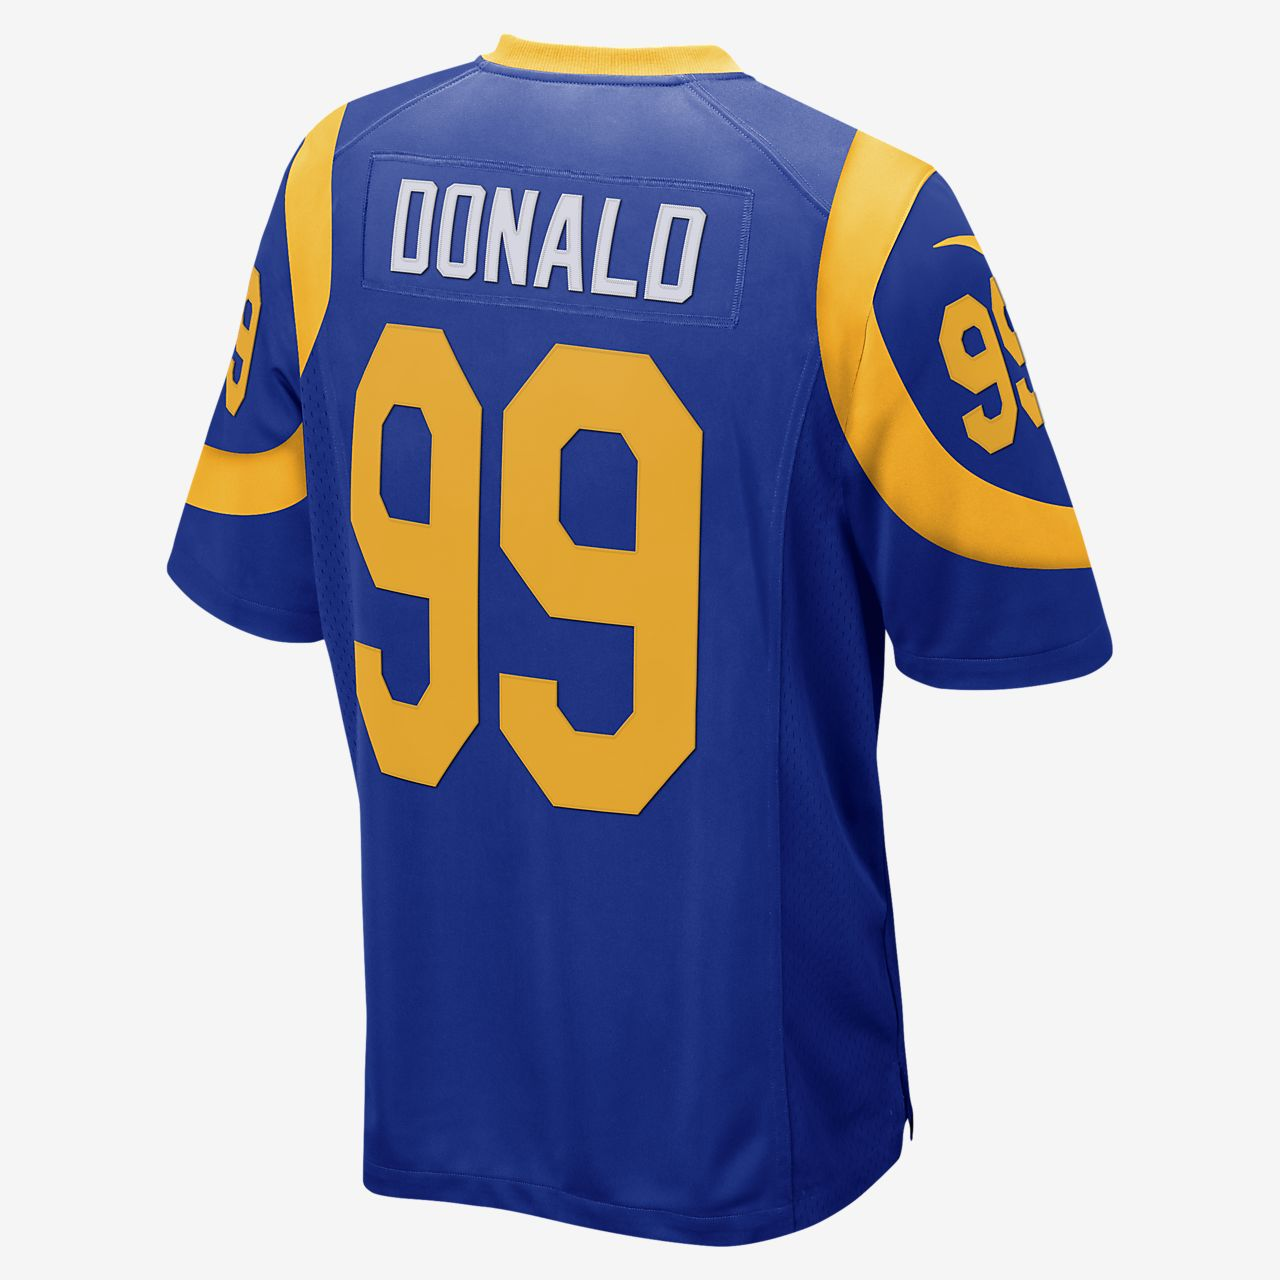 21222f897519 NFL Los Angeles Rams Game (Aaron Donald) Men s Football Jersey. Nike.com